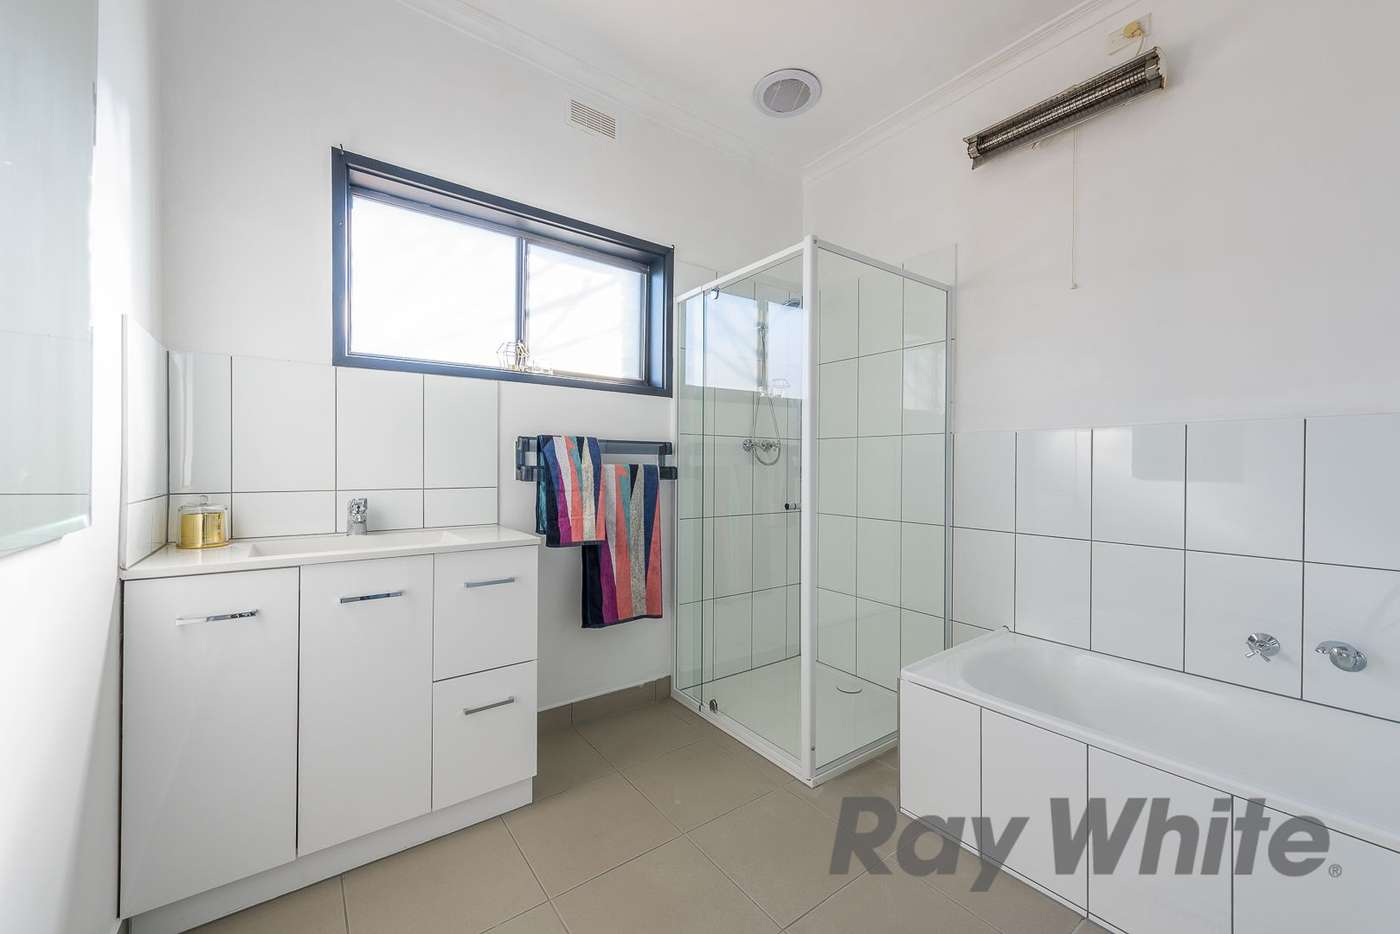 Seventh view of Homely house listing, 1 Waratah Avenue, Mordialloc VIC 3195